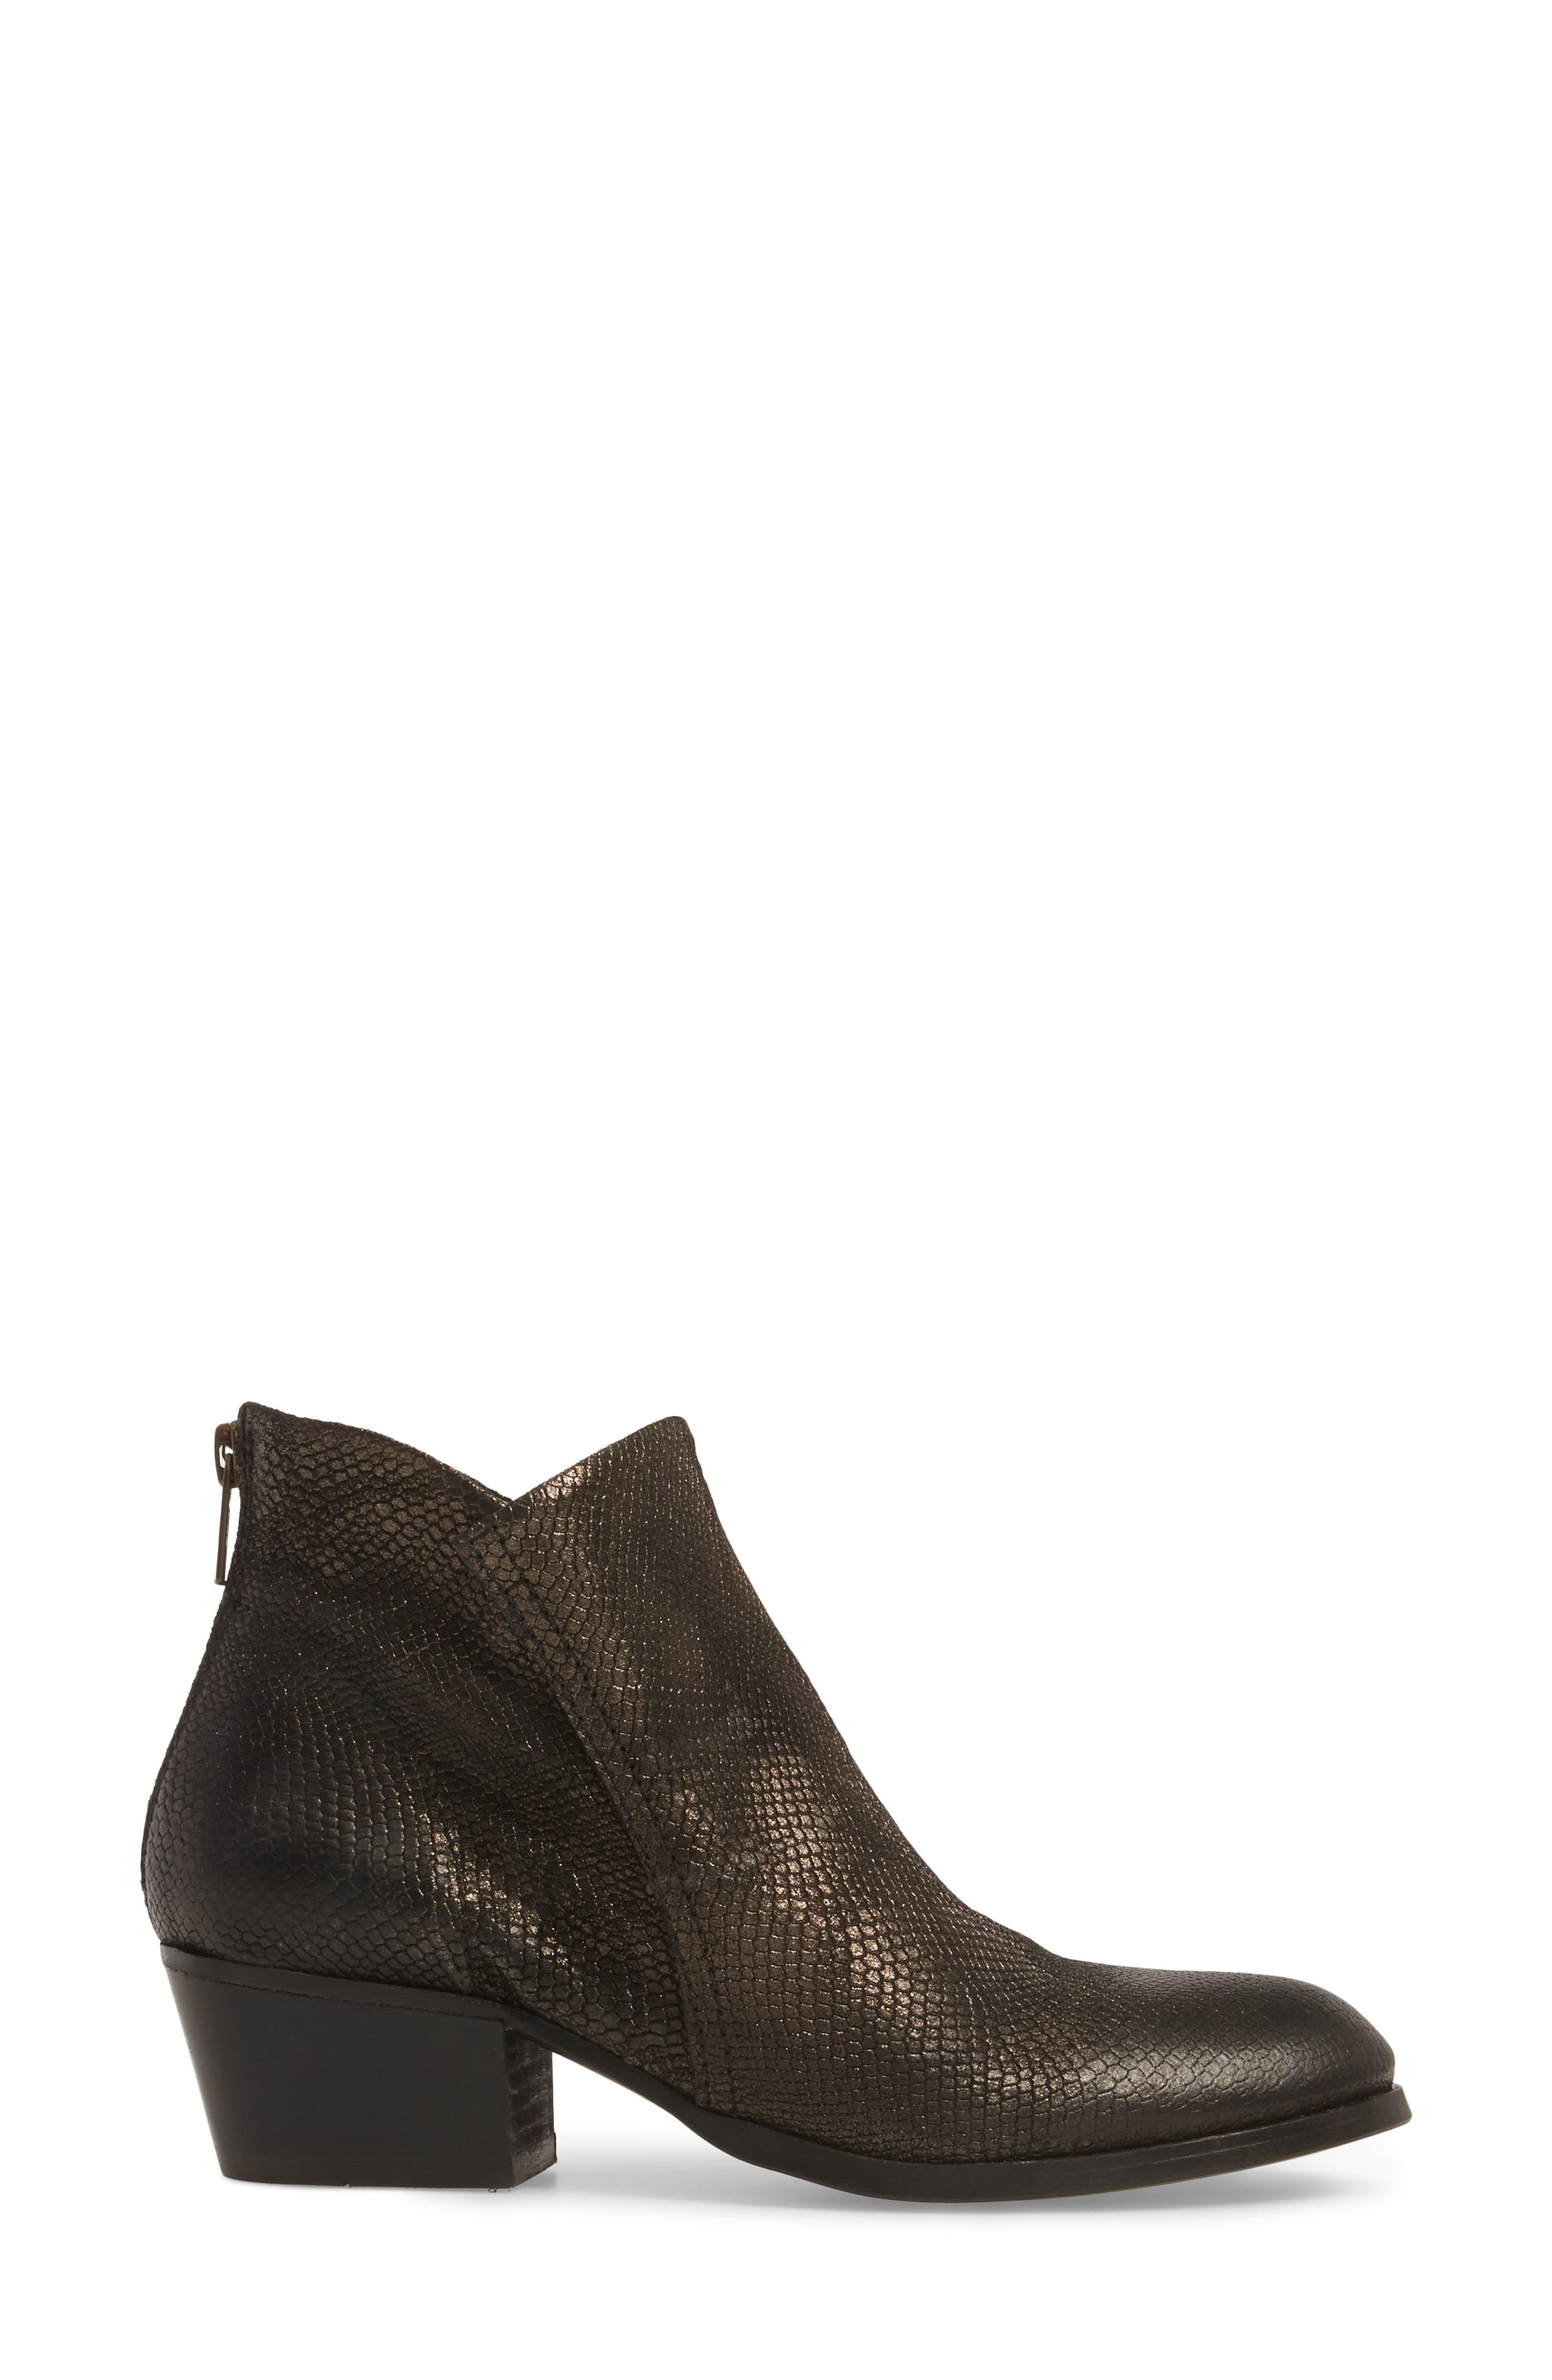 Apisi Bootie,                             Alternate thumbnail 3, color,                             Pewter